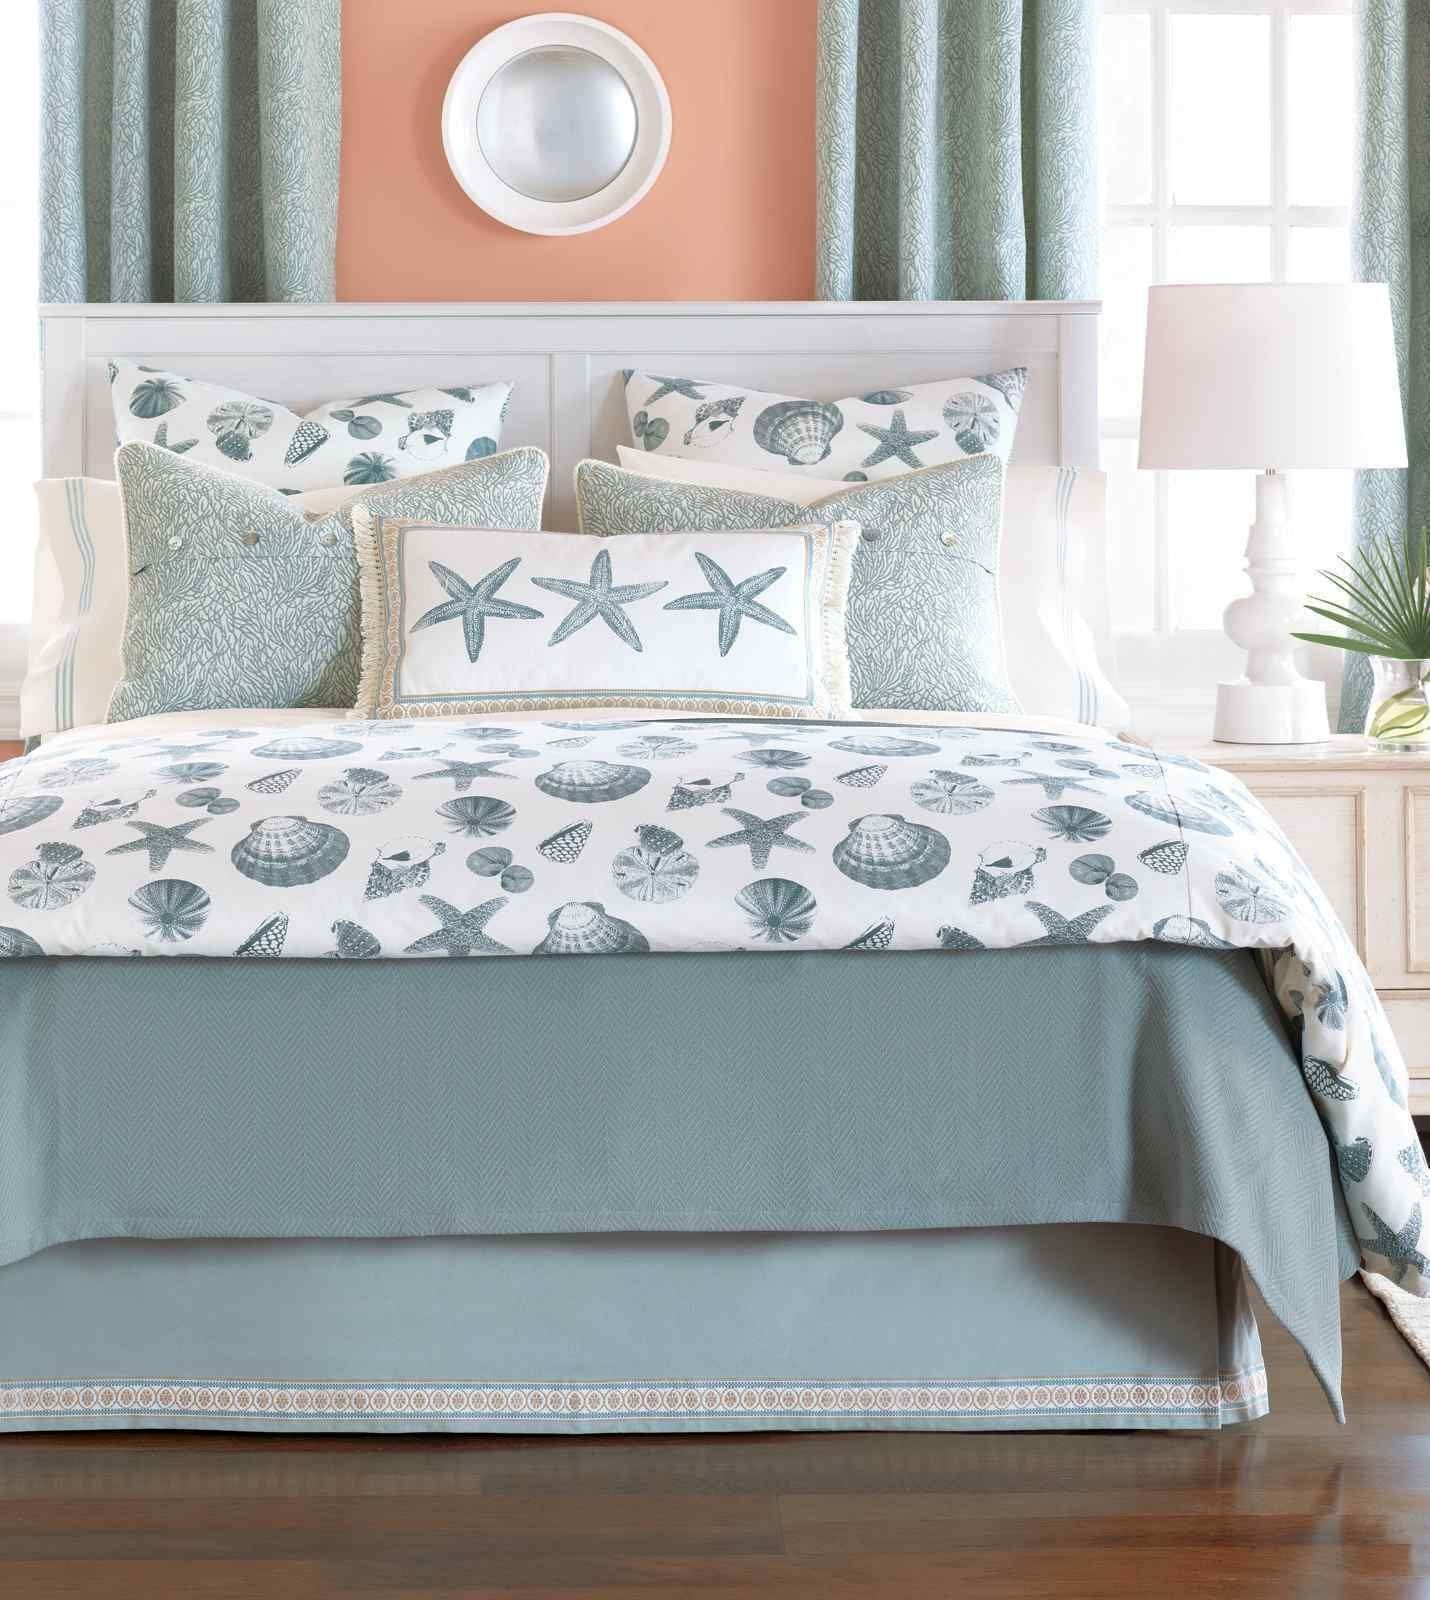 nautical daybed bedding sets ideas on